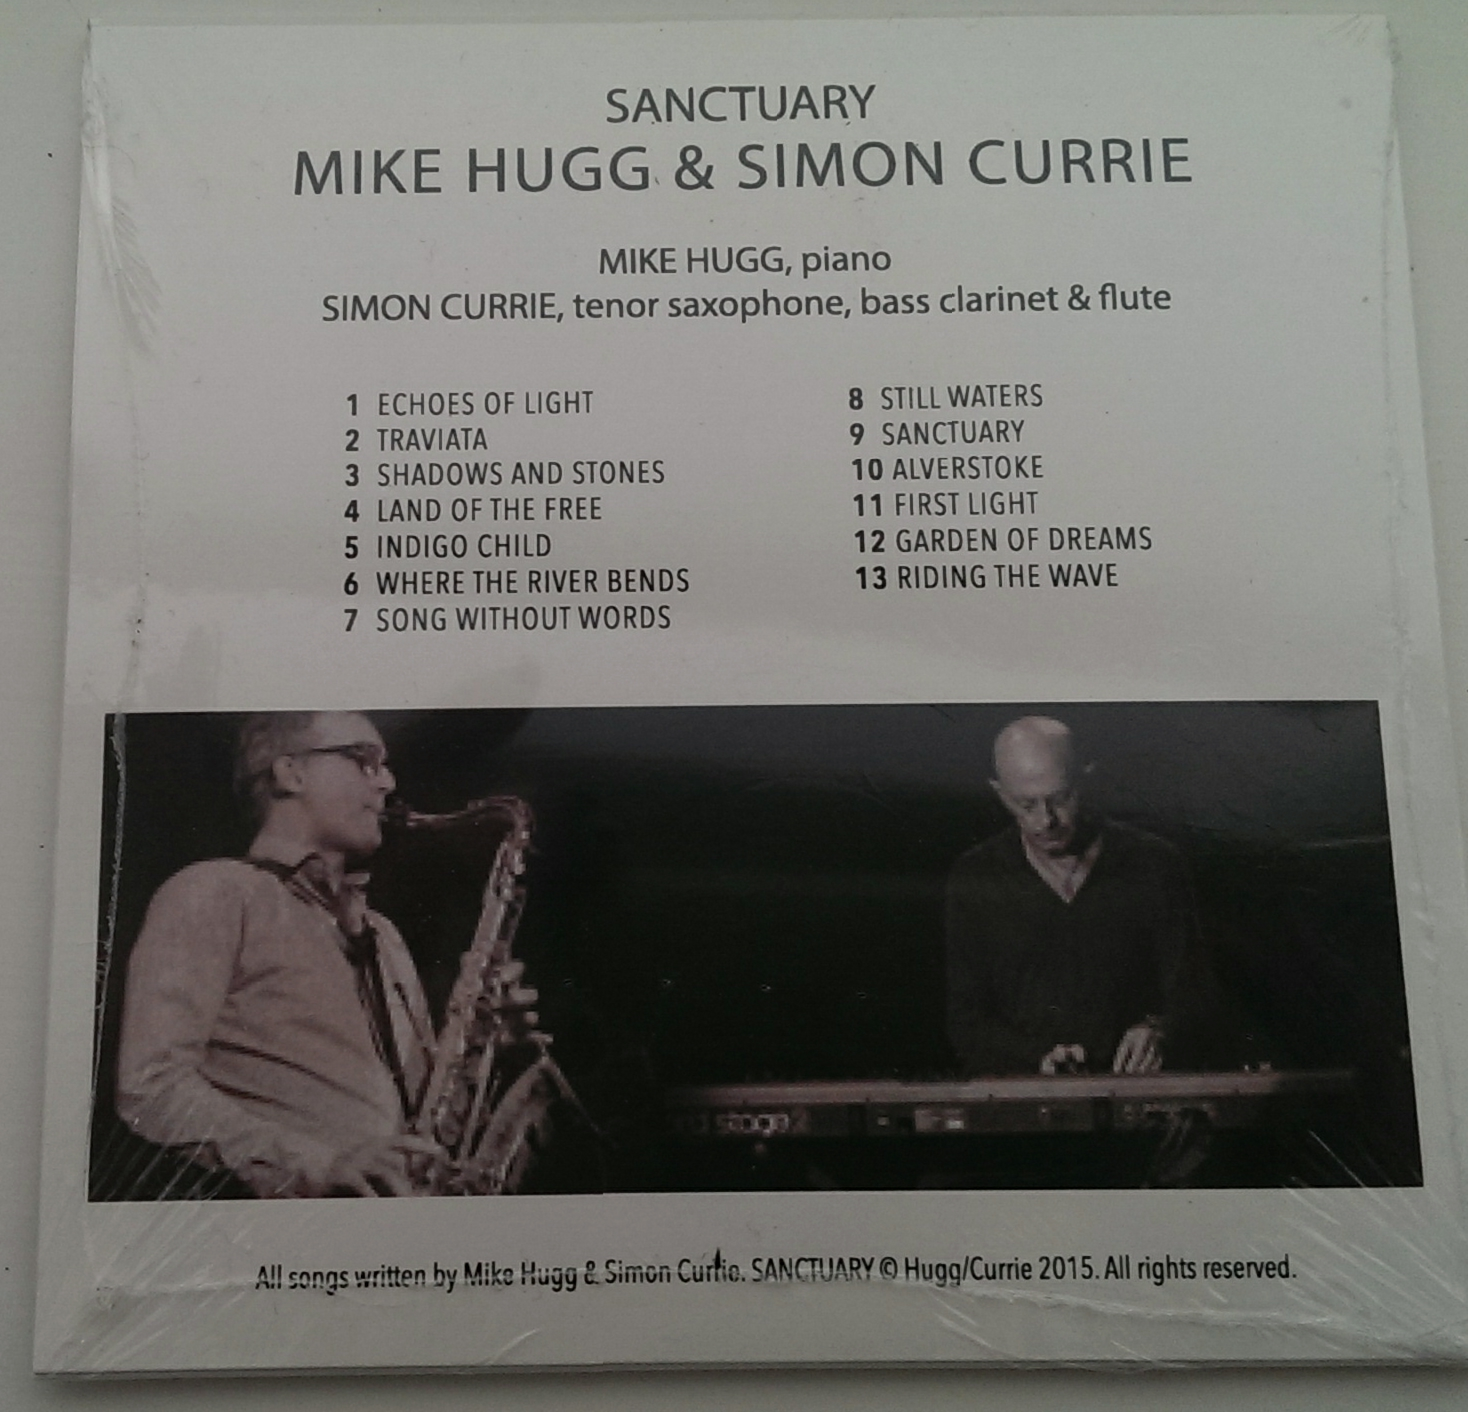 Mike Hugg & Simon Currie CD - Sanctuary